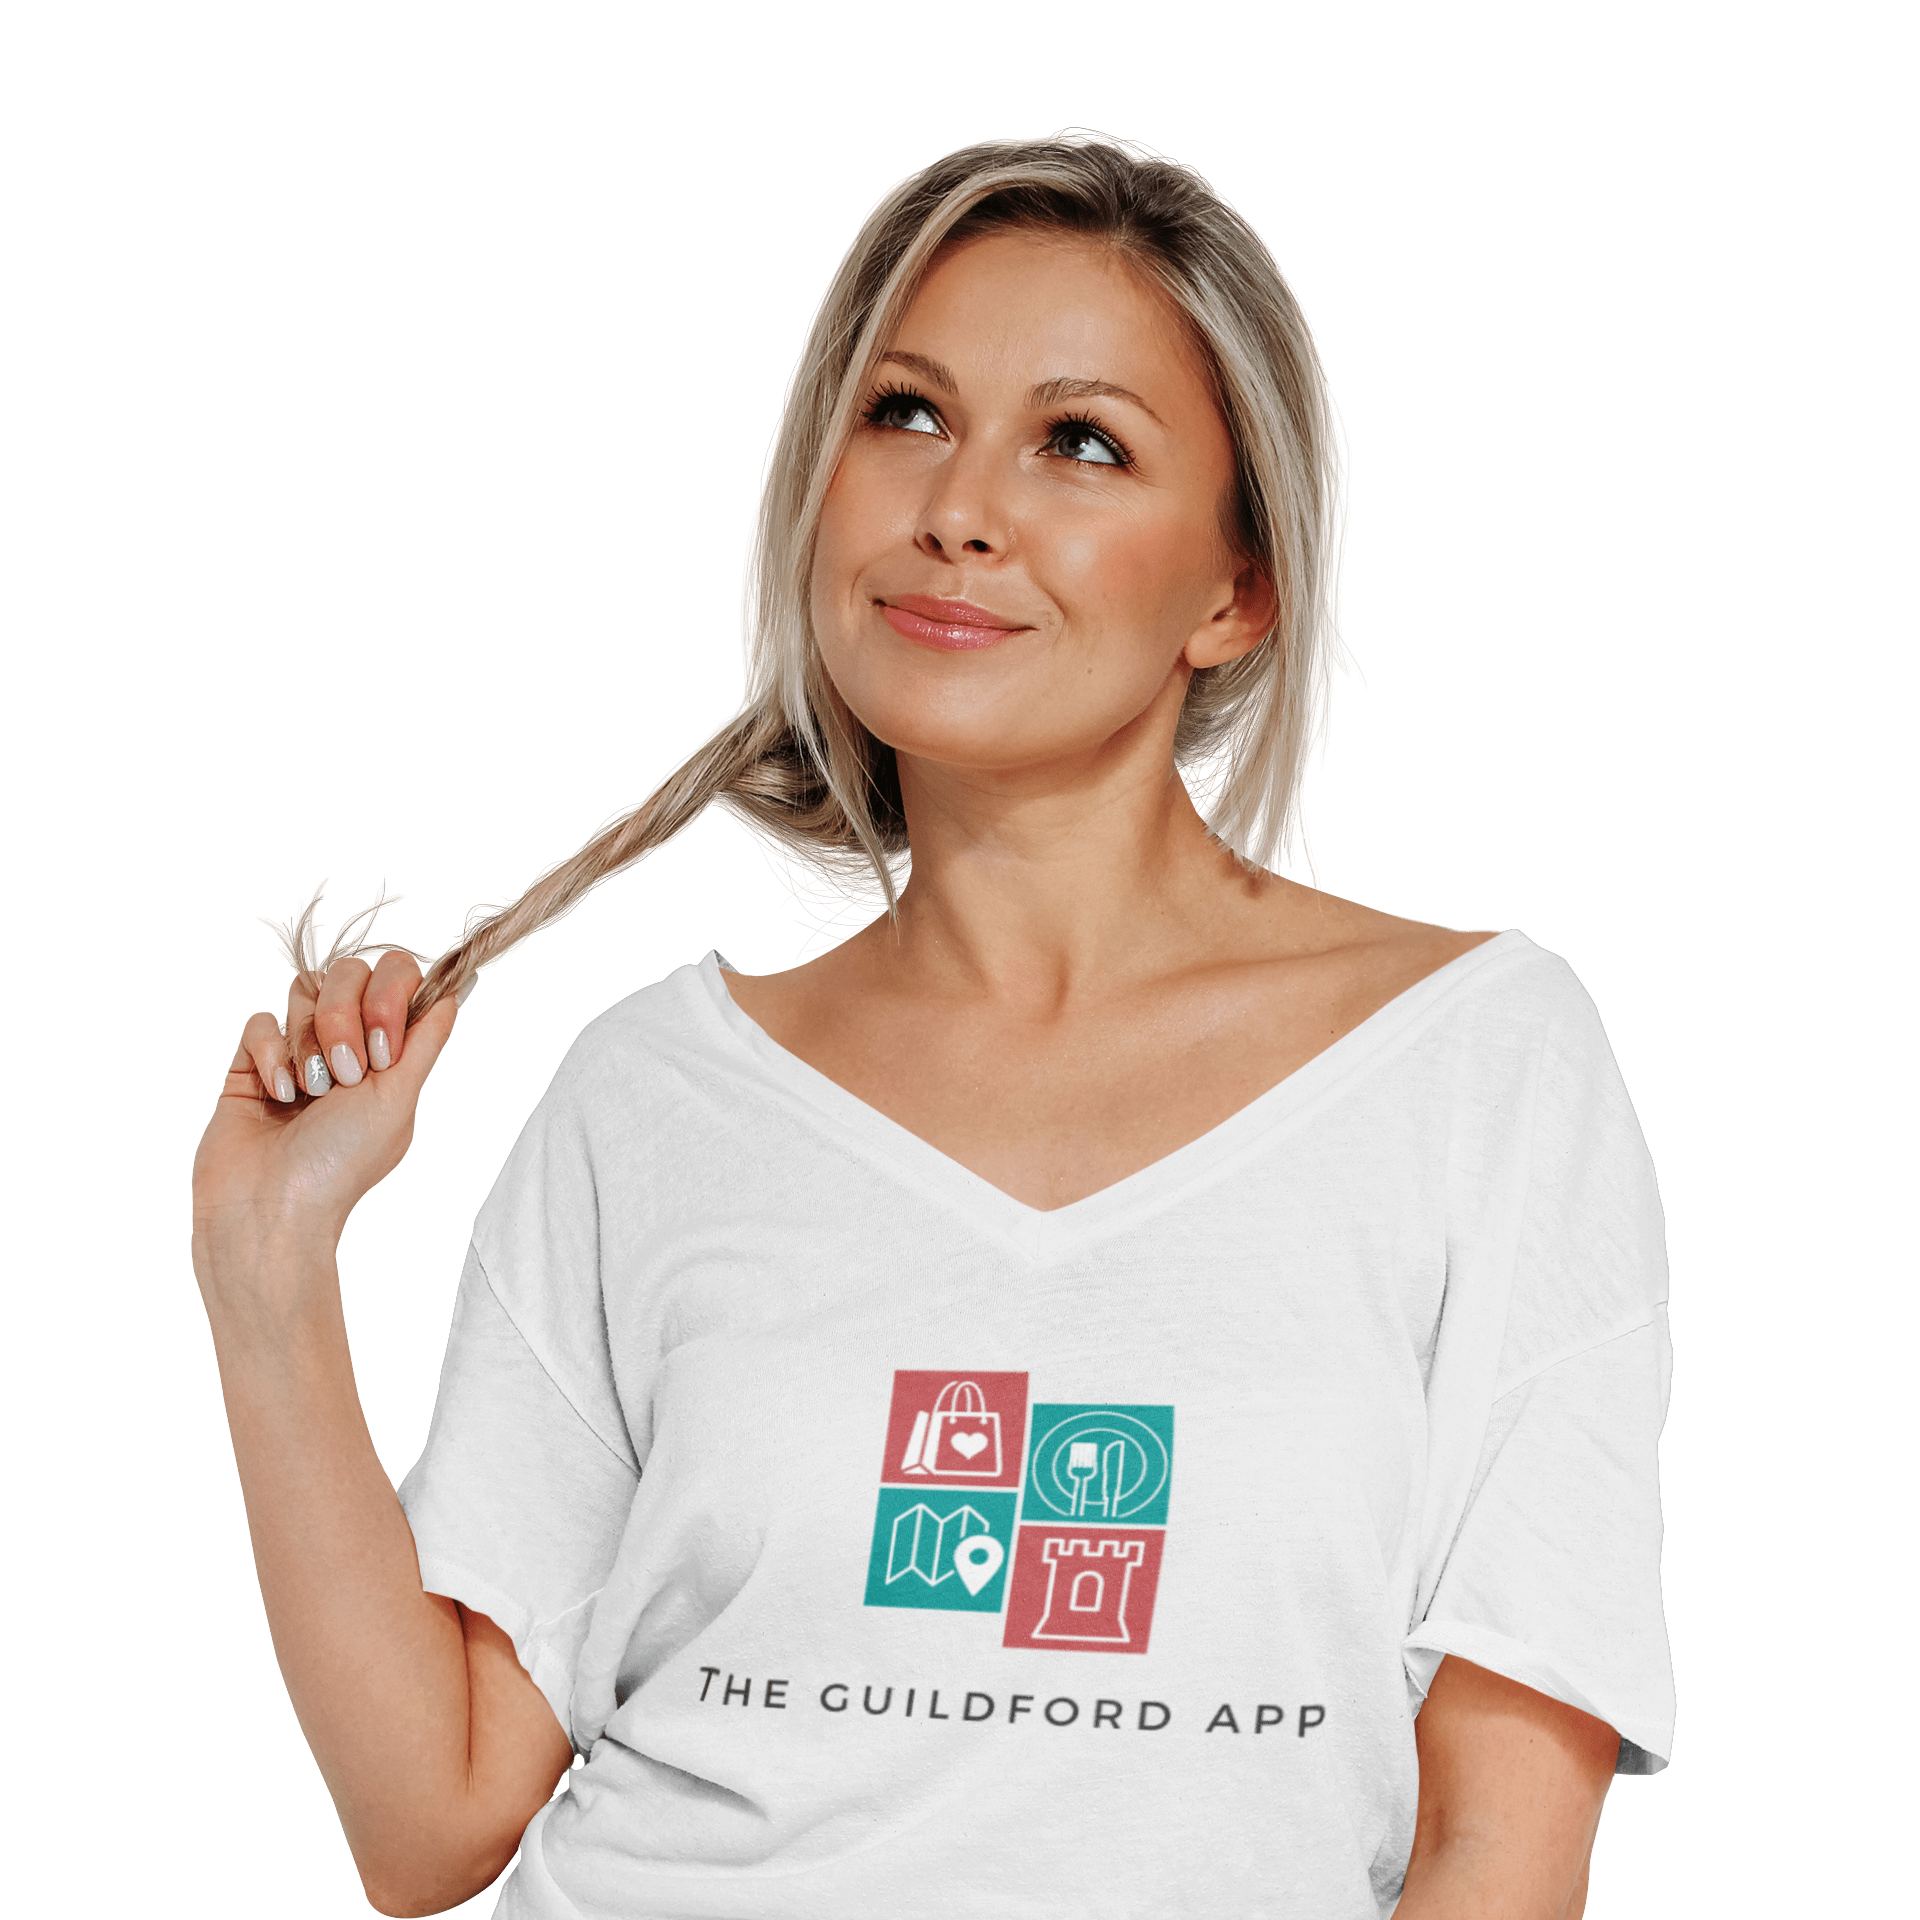 Woman Wearing The Guildford App T Shirt Transparent Background